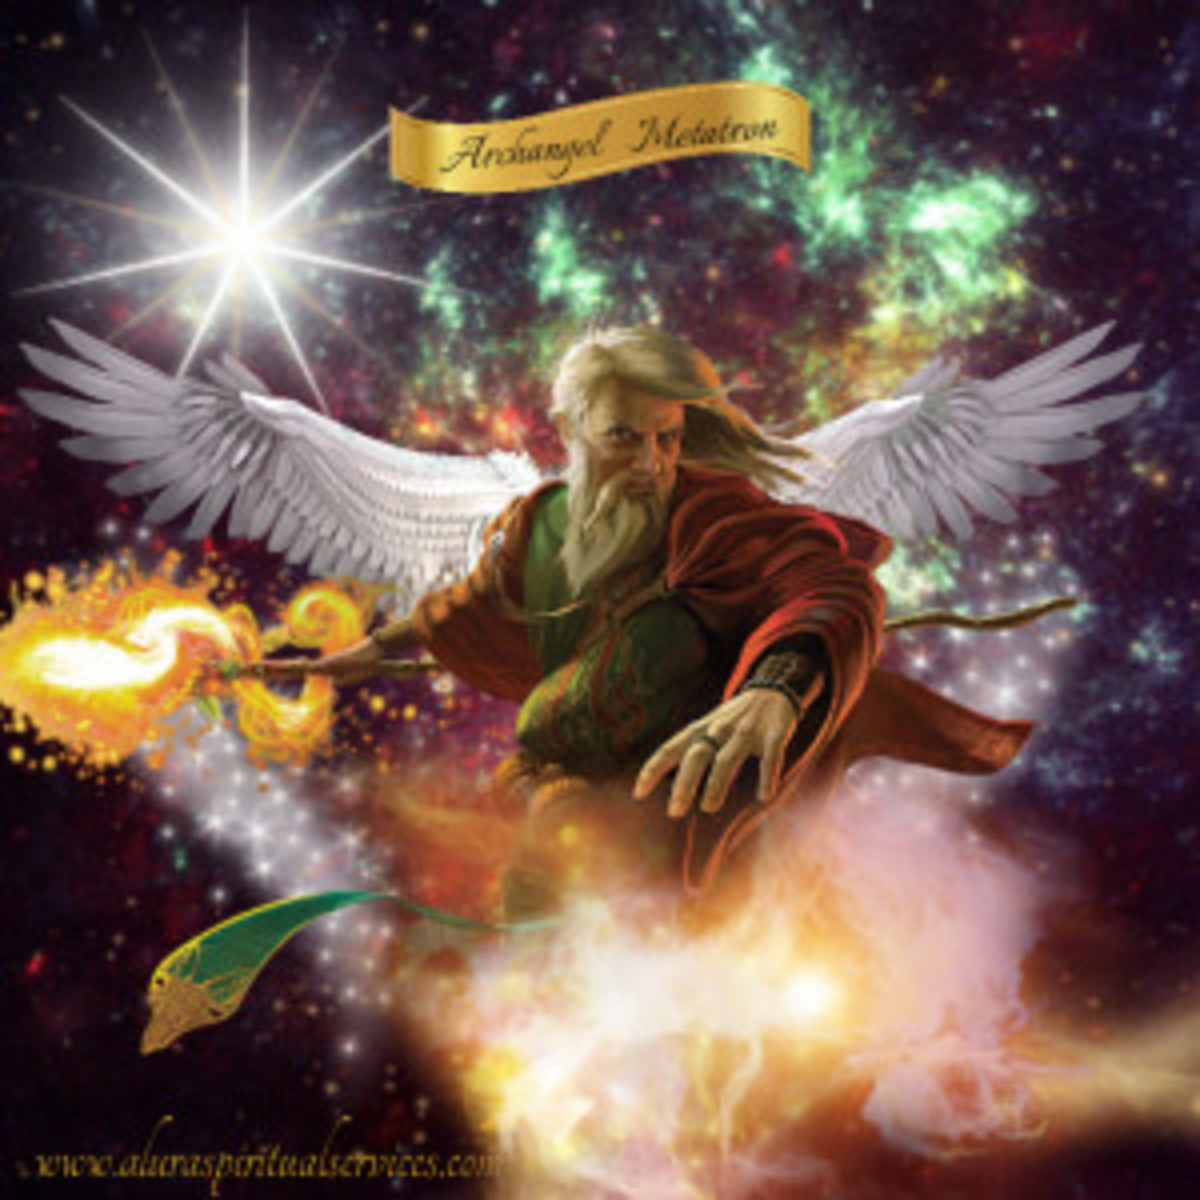 Metatron, real or legend?